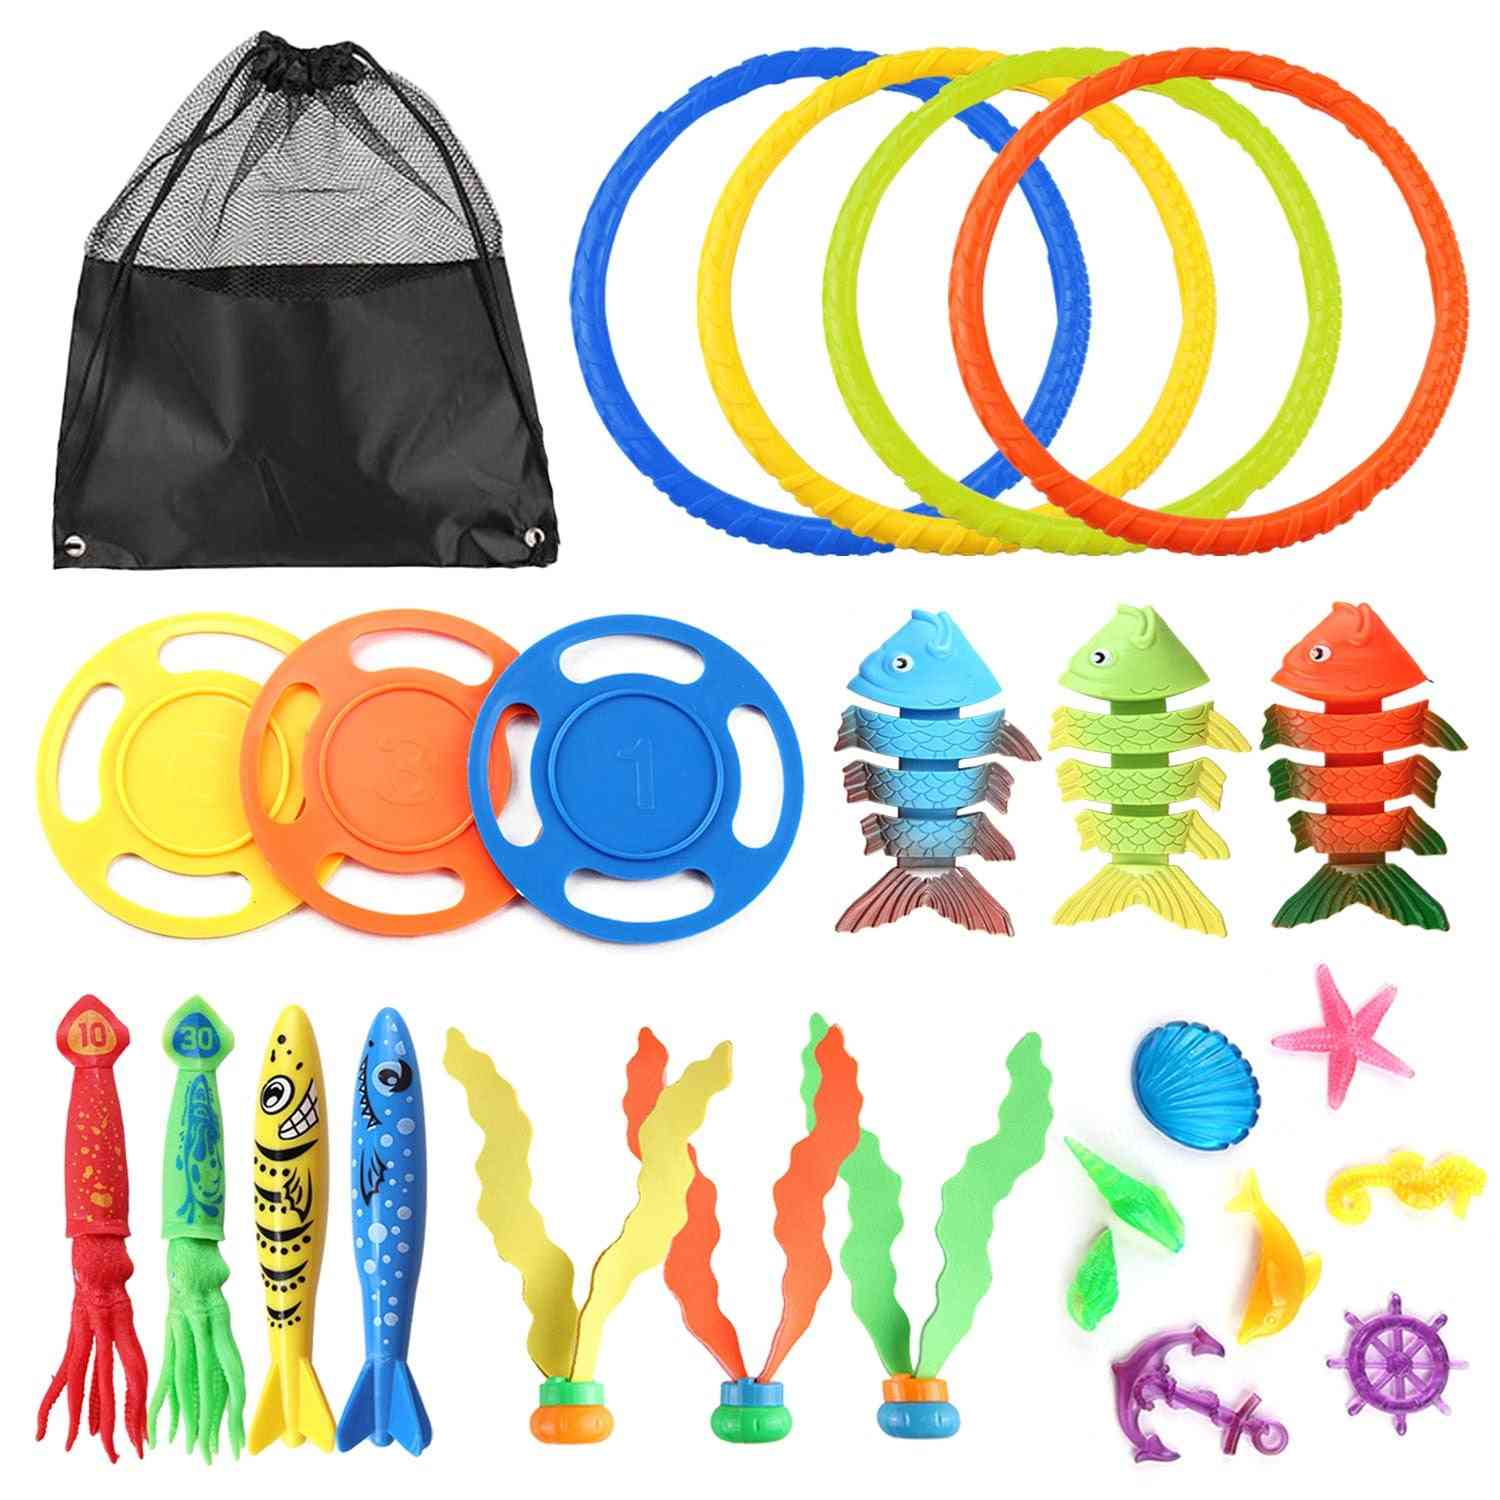 Underwater Water Play With Storage Bag For /